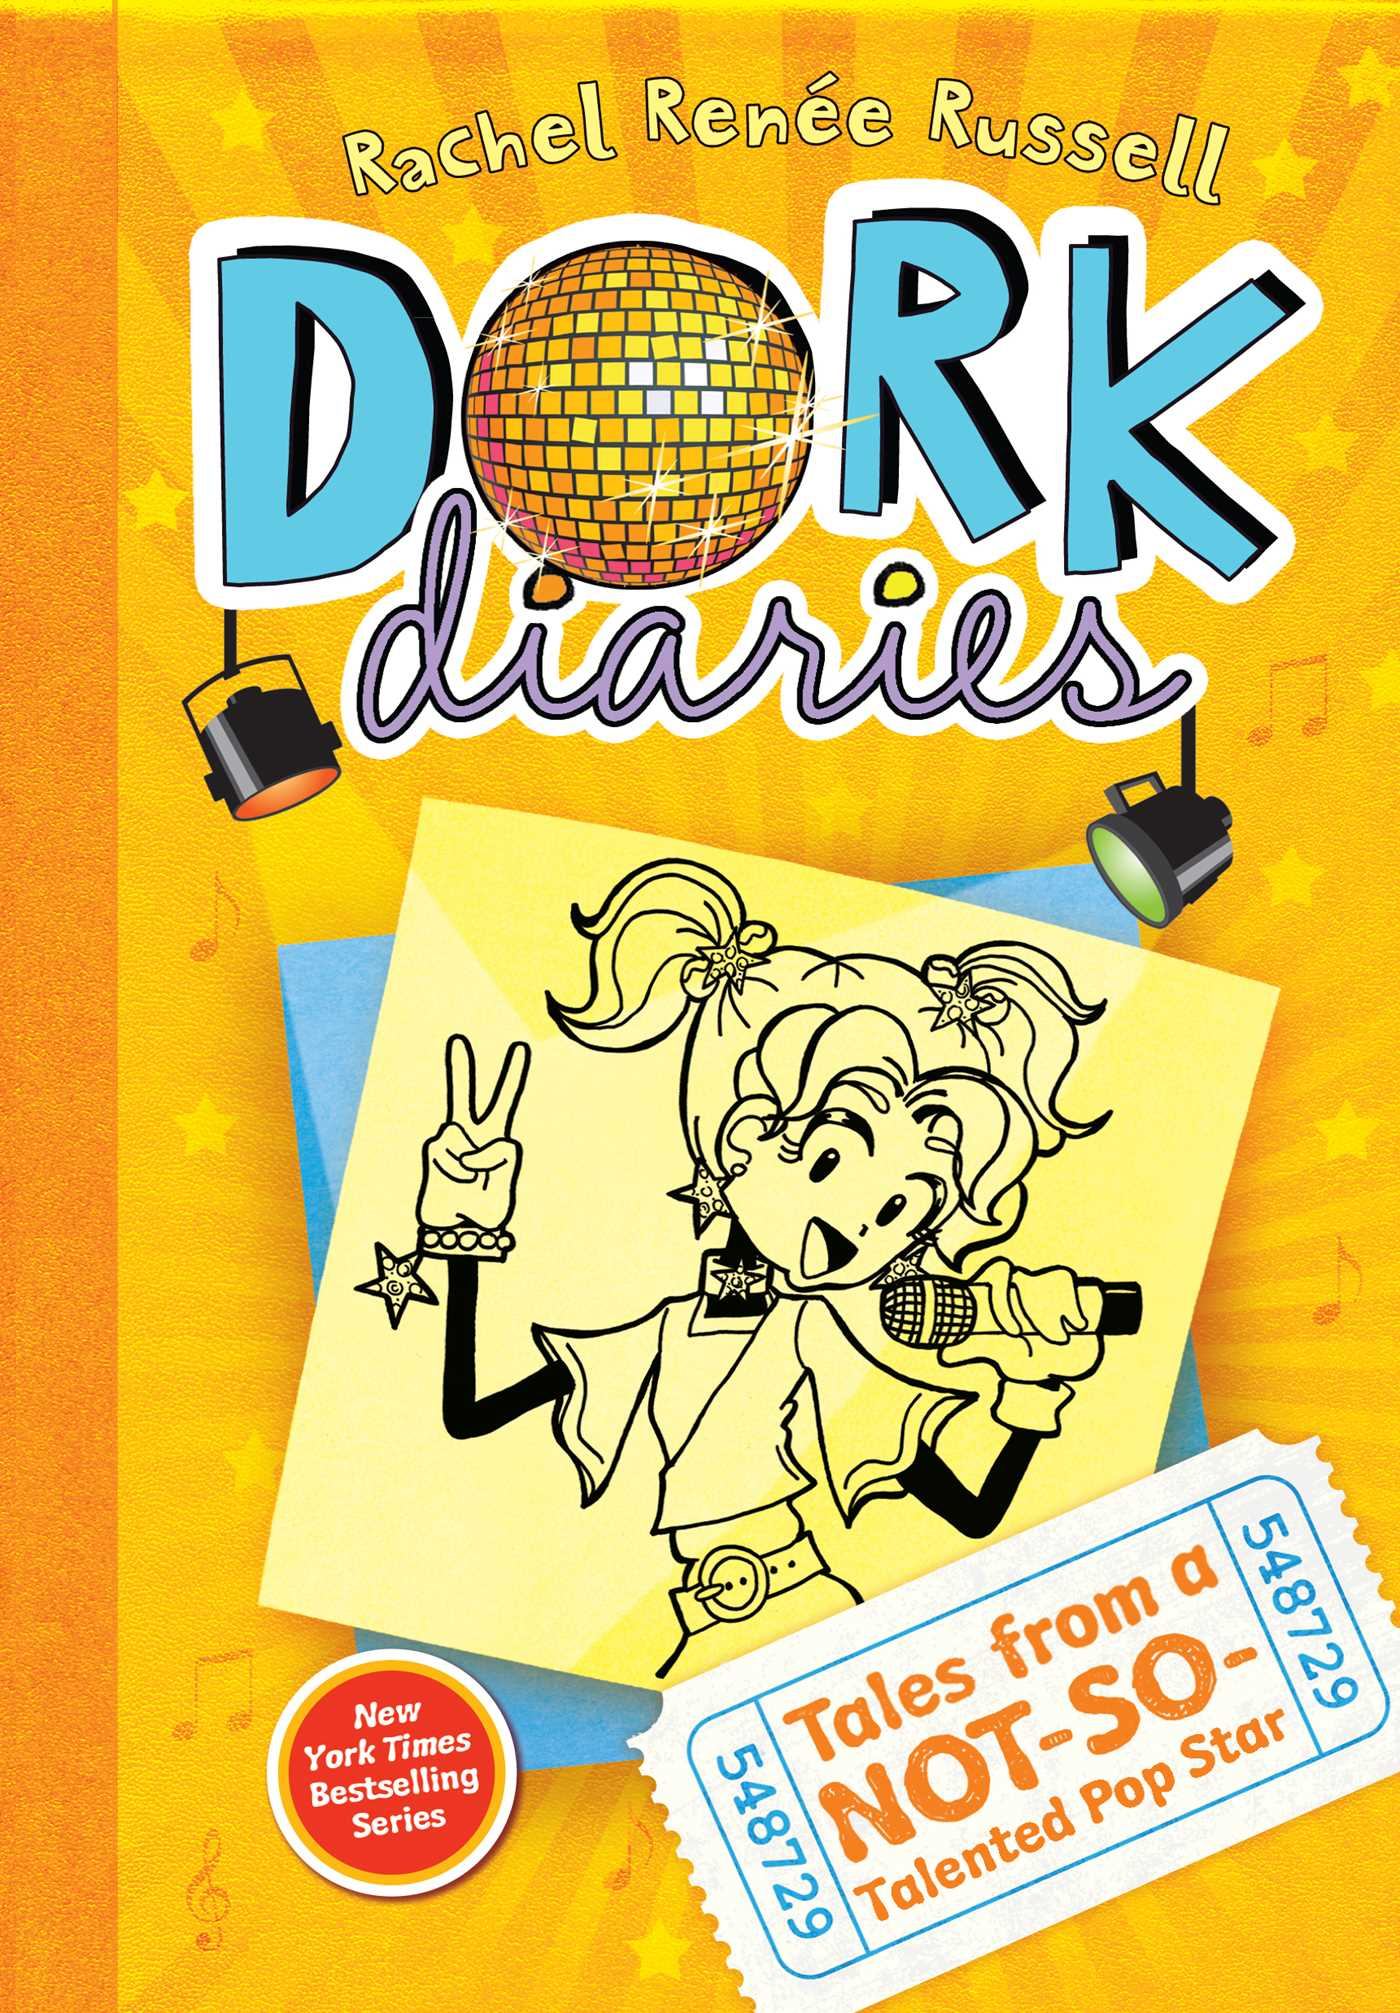 Dork-diaries-3-enhanced-ebook-edition-9781442441231_hr